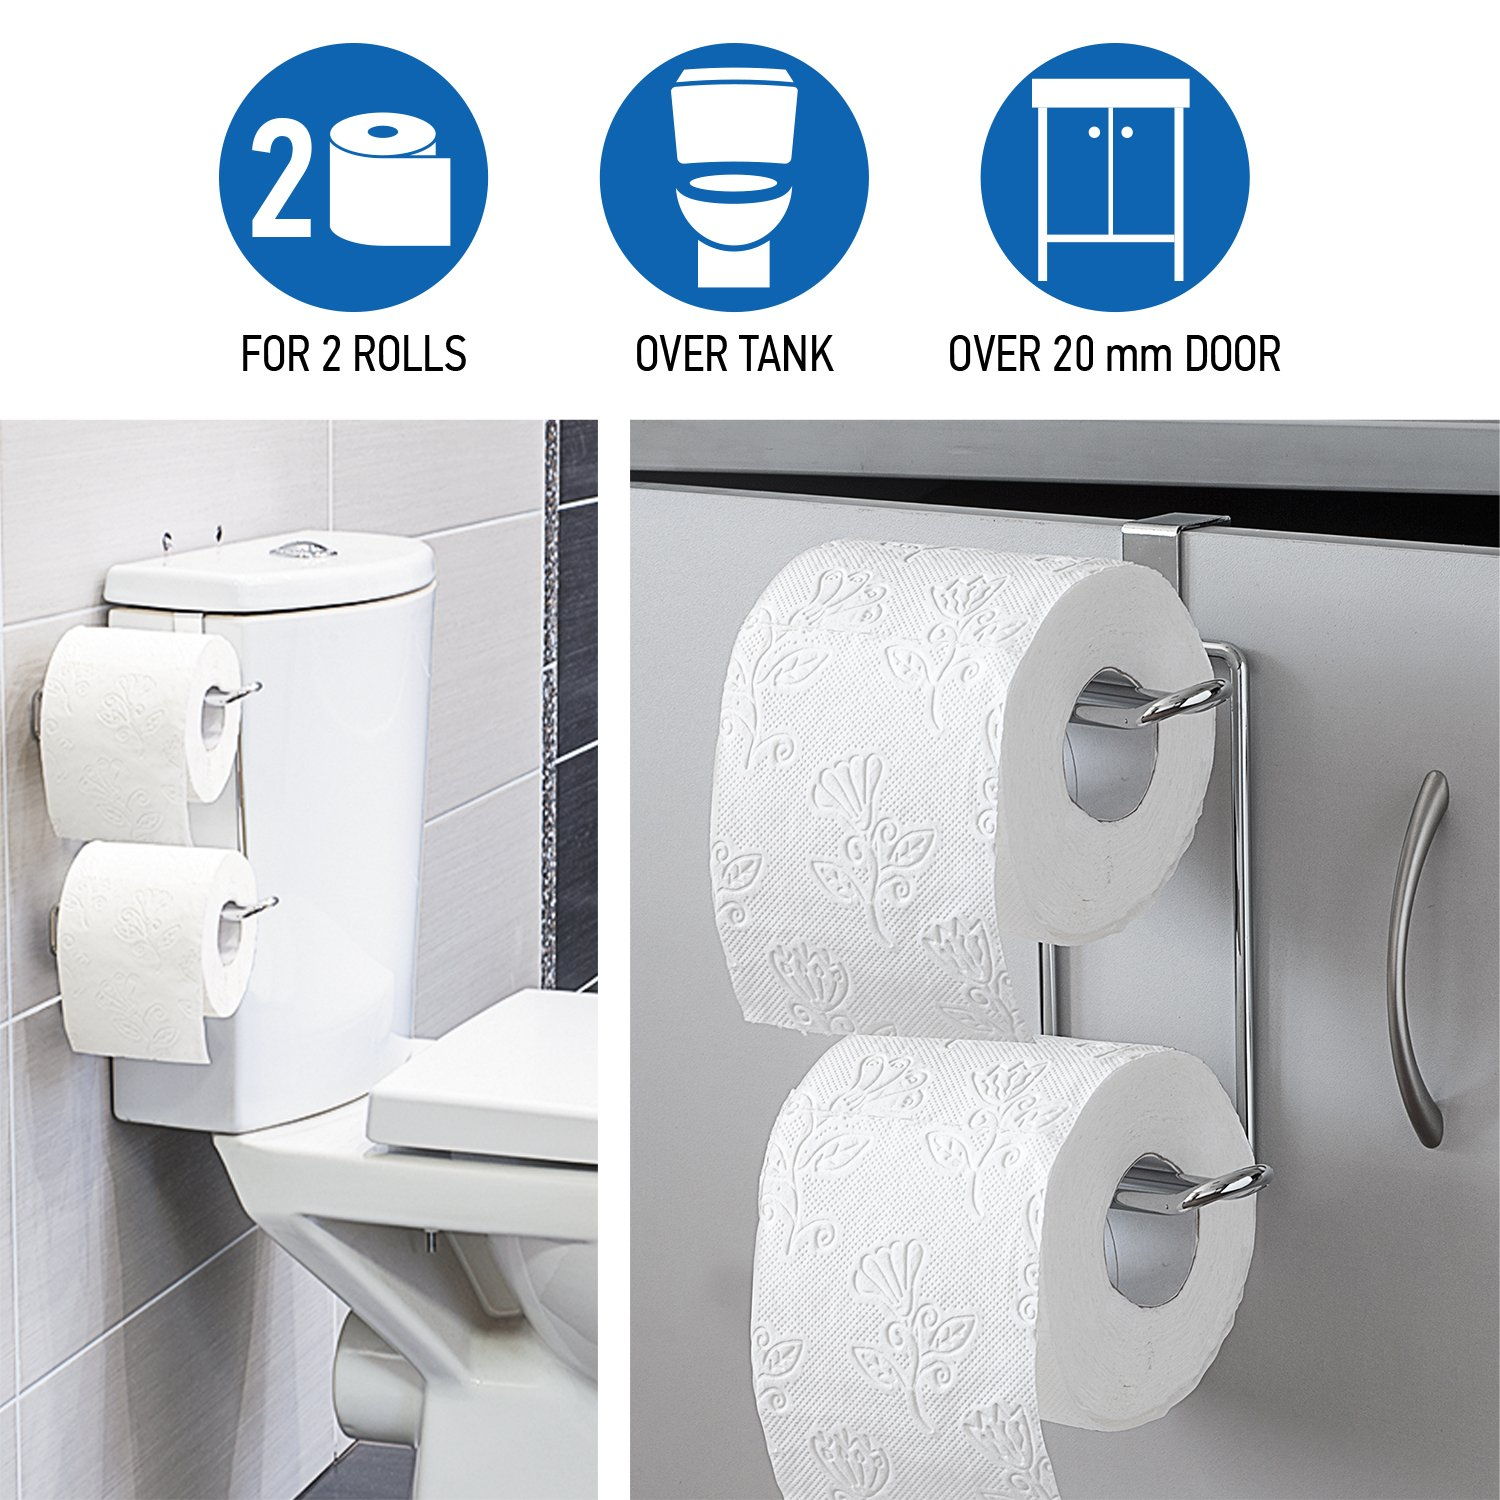 Wonder Worker Clever Over the Tank 2 Roll Toilet Paper Holder for Bathroom Storage,